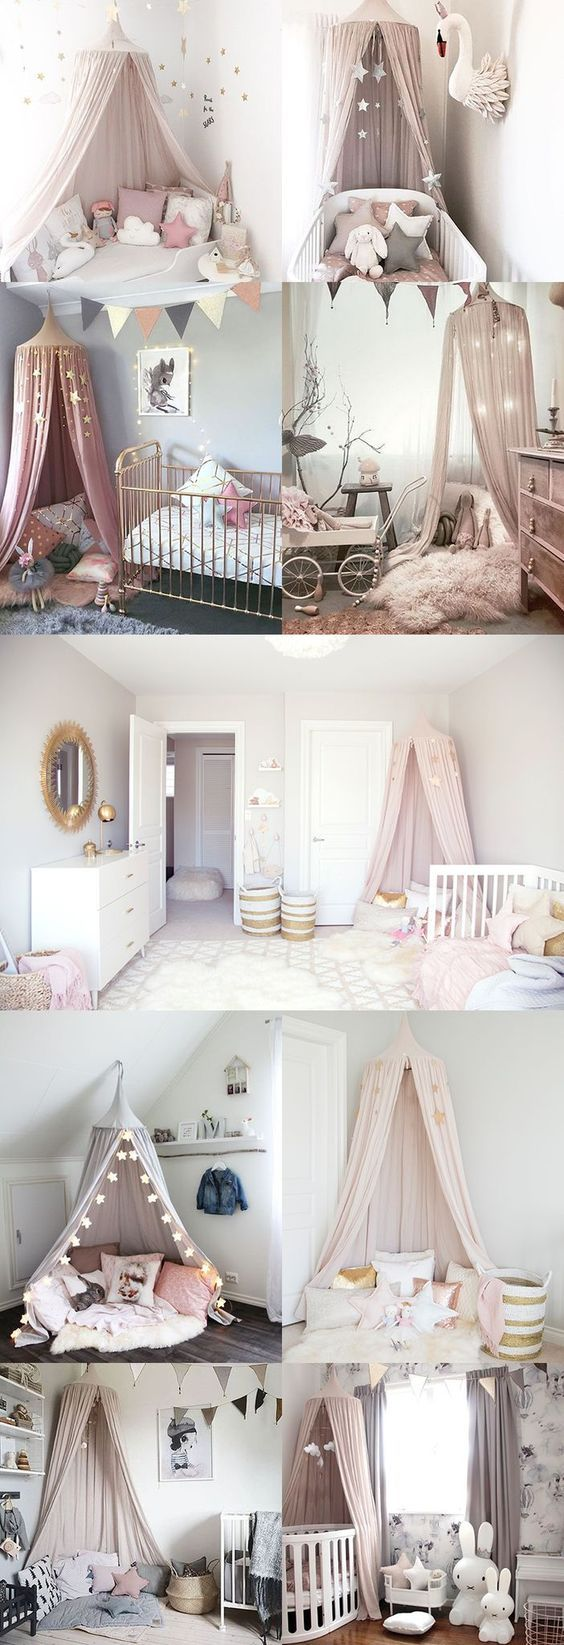 Kids and Baby Room Decor Ideas - Magical Pink Canopy Tent - Light Pink Blush White & Kids and Baby Room Decor Ideas - Magical Pink Canopy Tent - Light ...